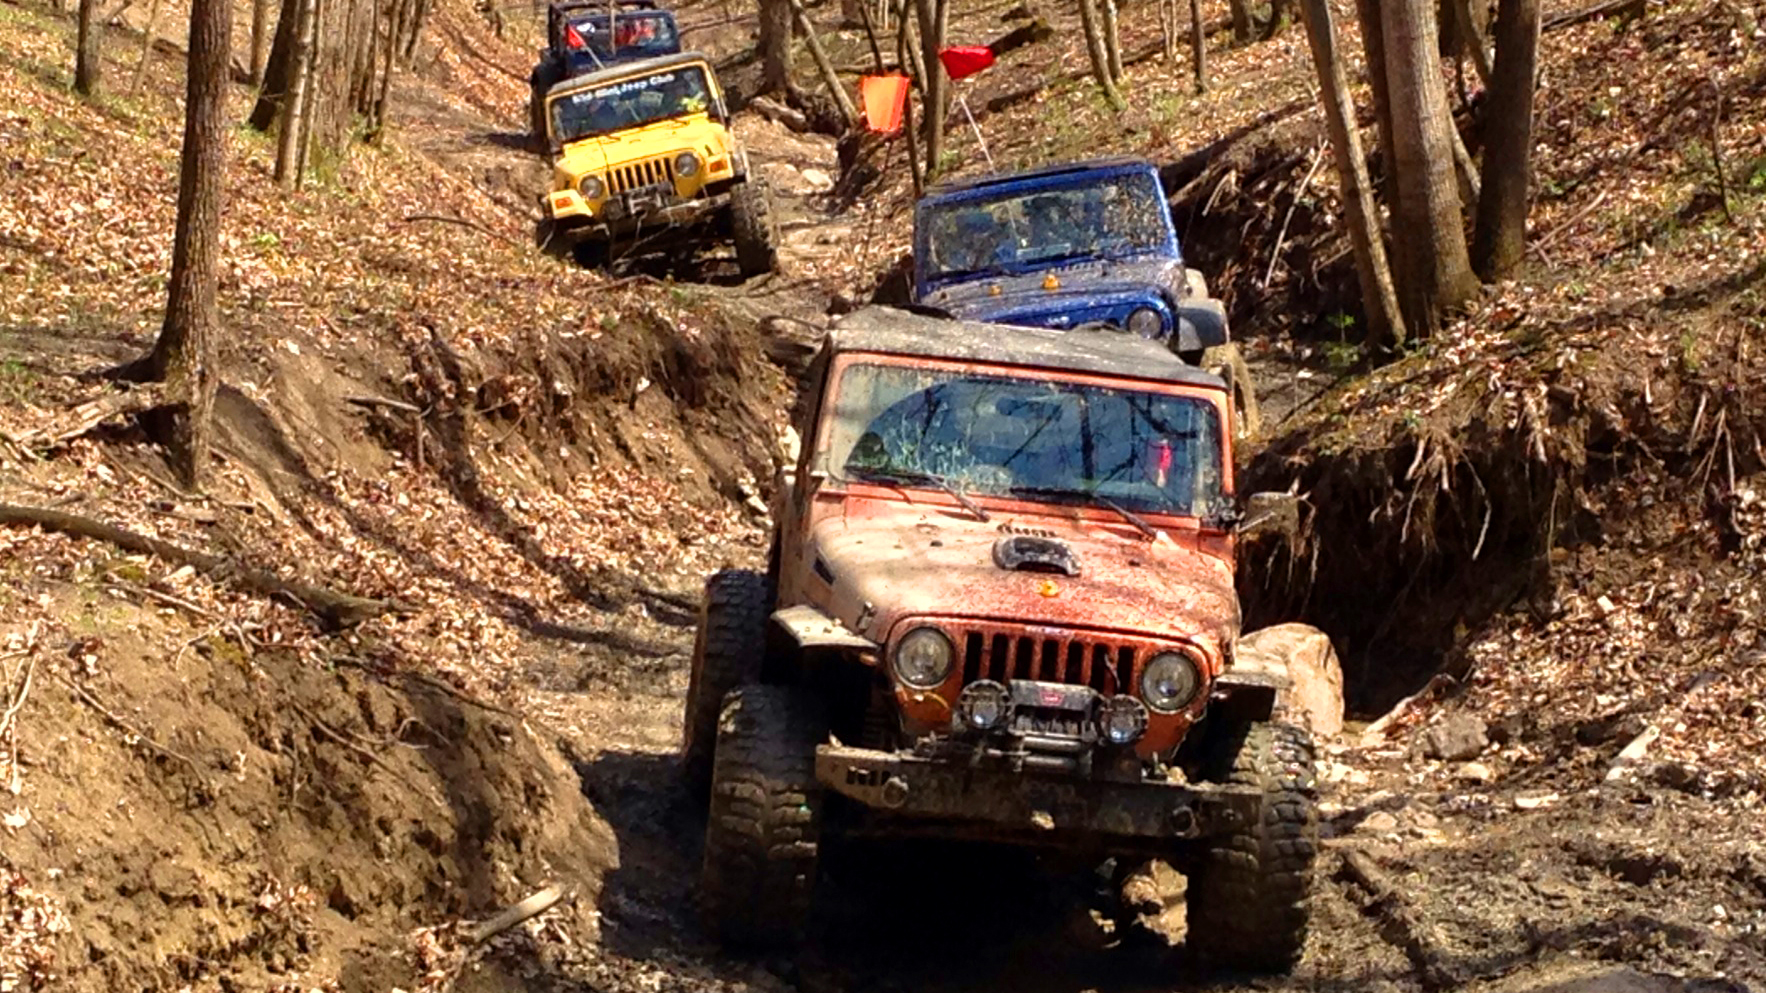 THE BEST DESTINATIONS FOR OFF-ROADING